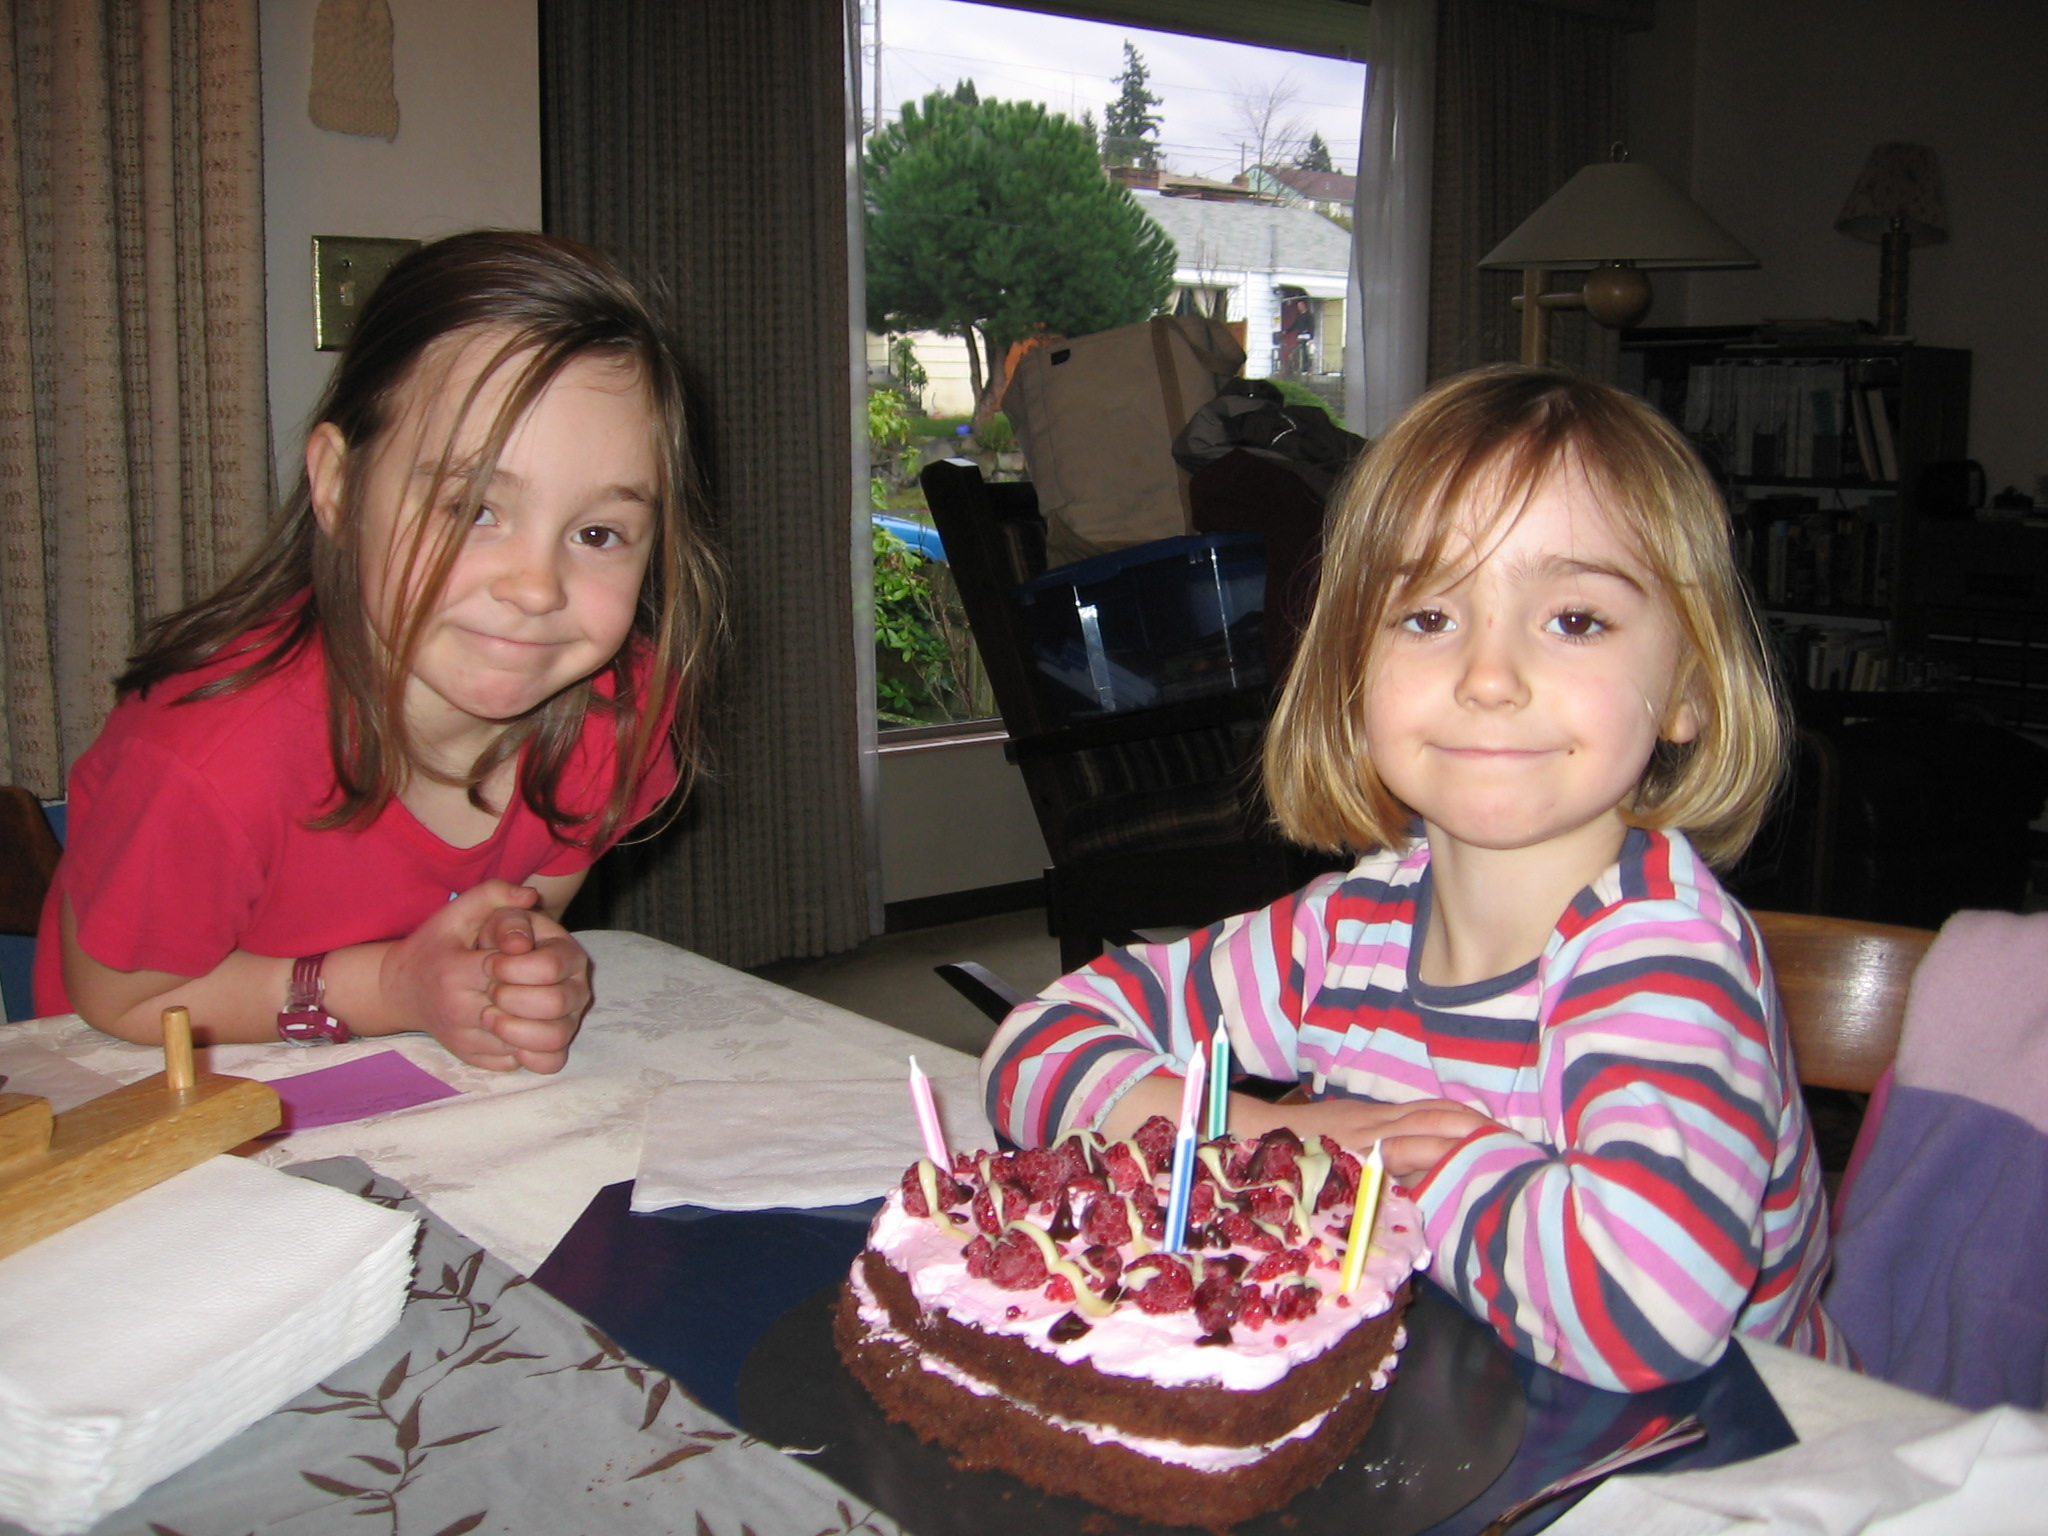 Two girls and a heart shaped birthday cake decorated with berries and five candles.